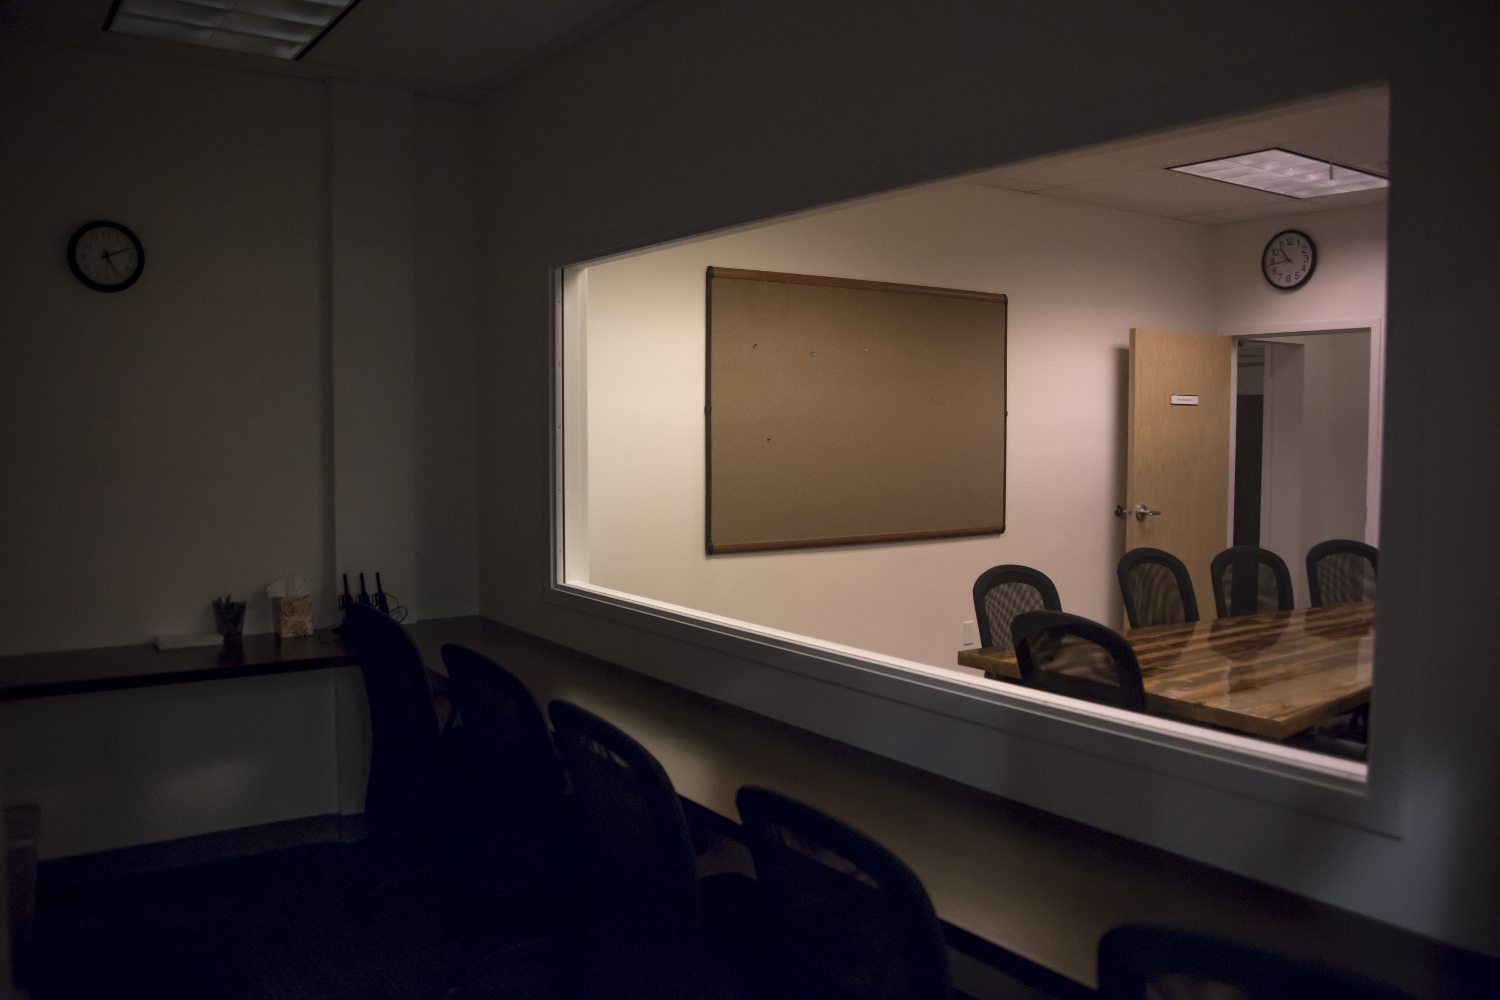 fdr-denver-focus-group-room